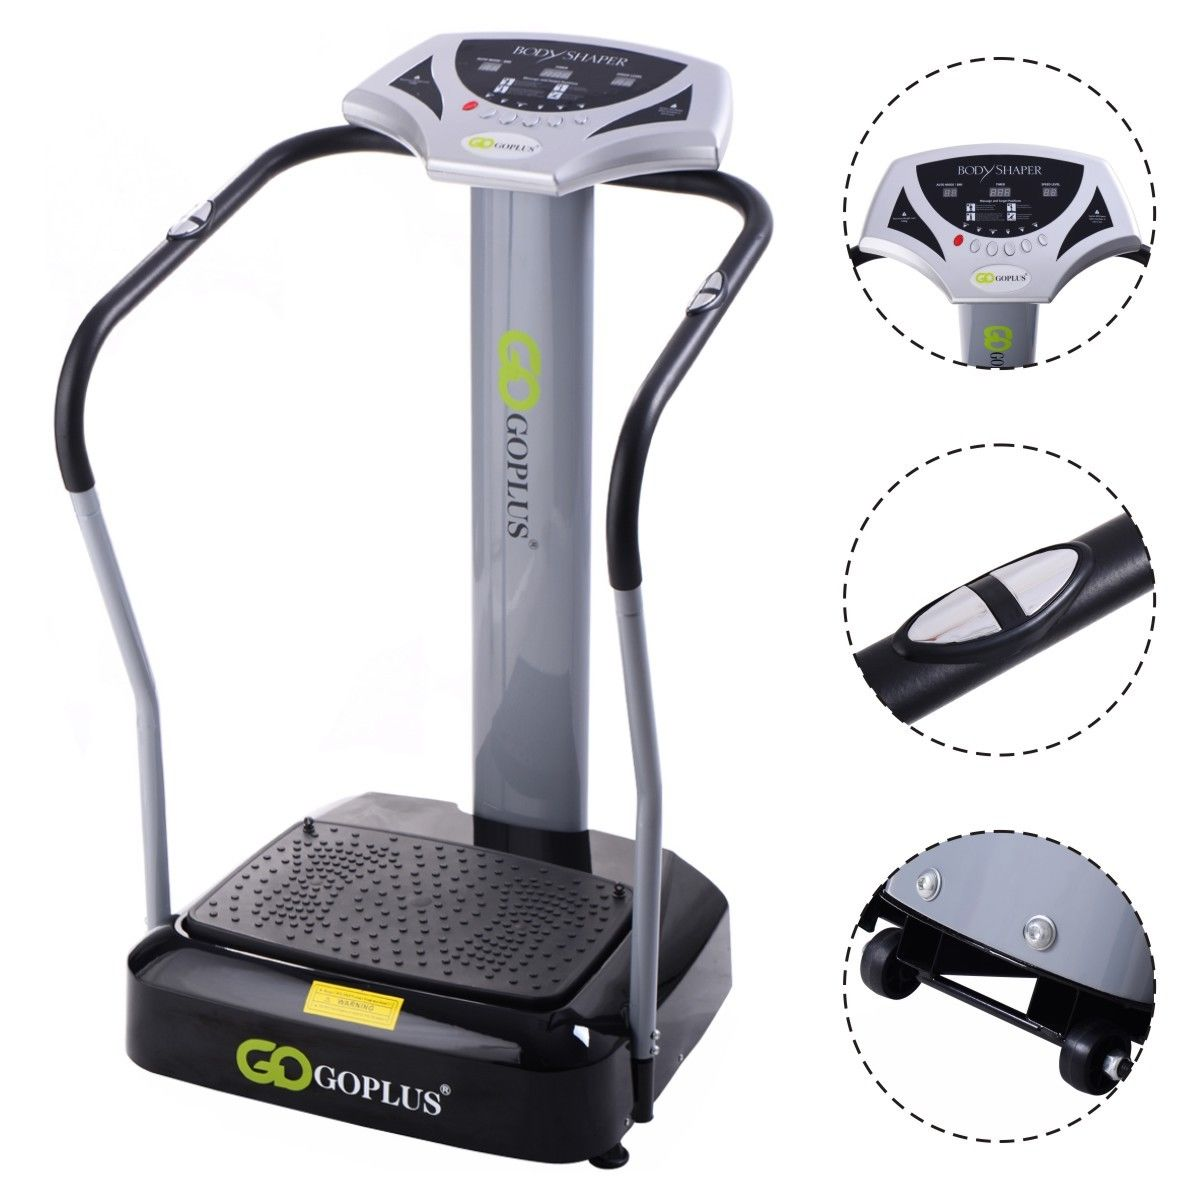 Goplus 2000W Crazy Fit Whole Body Vibration Platform Exer...